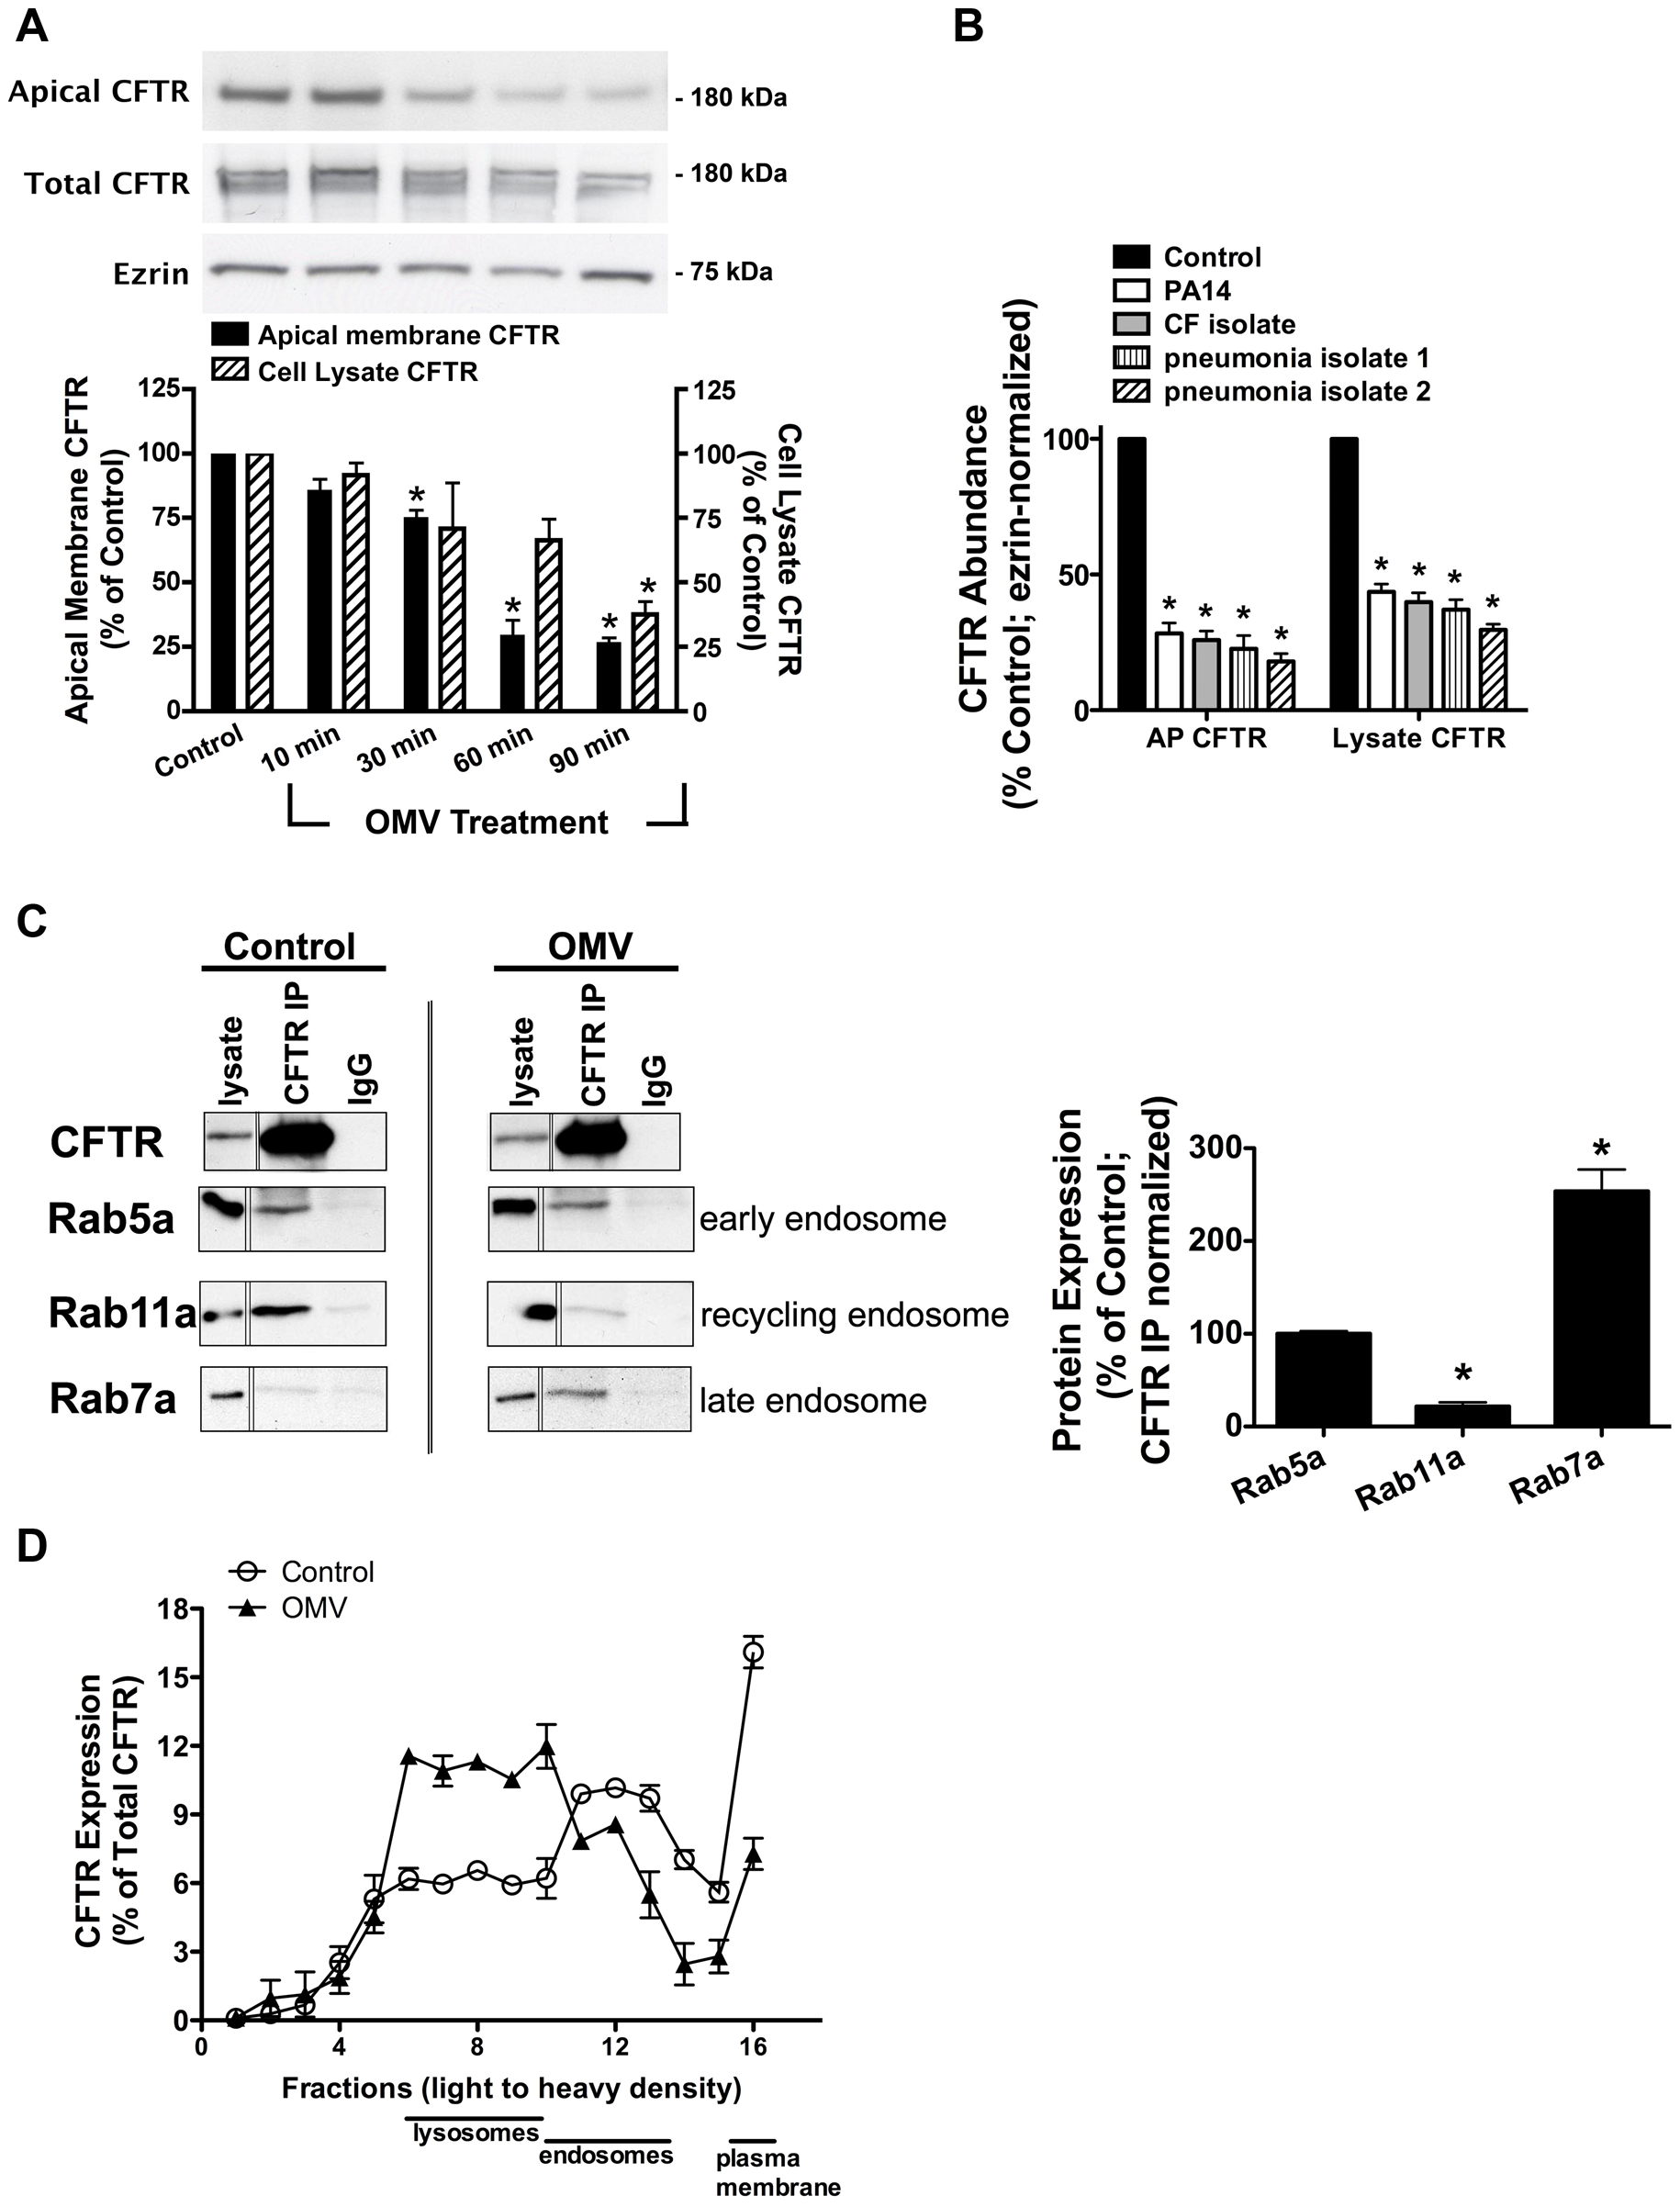 Cif redirects CFTR from recycling endosomes to the lysosomal, degradative pathway.